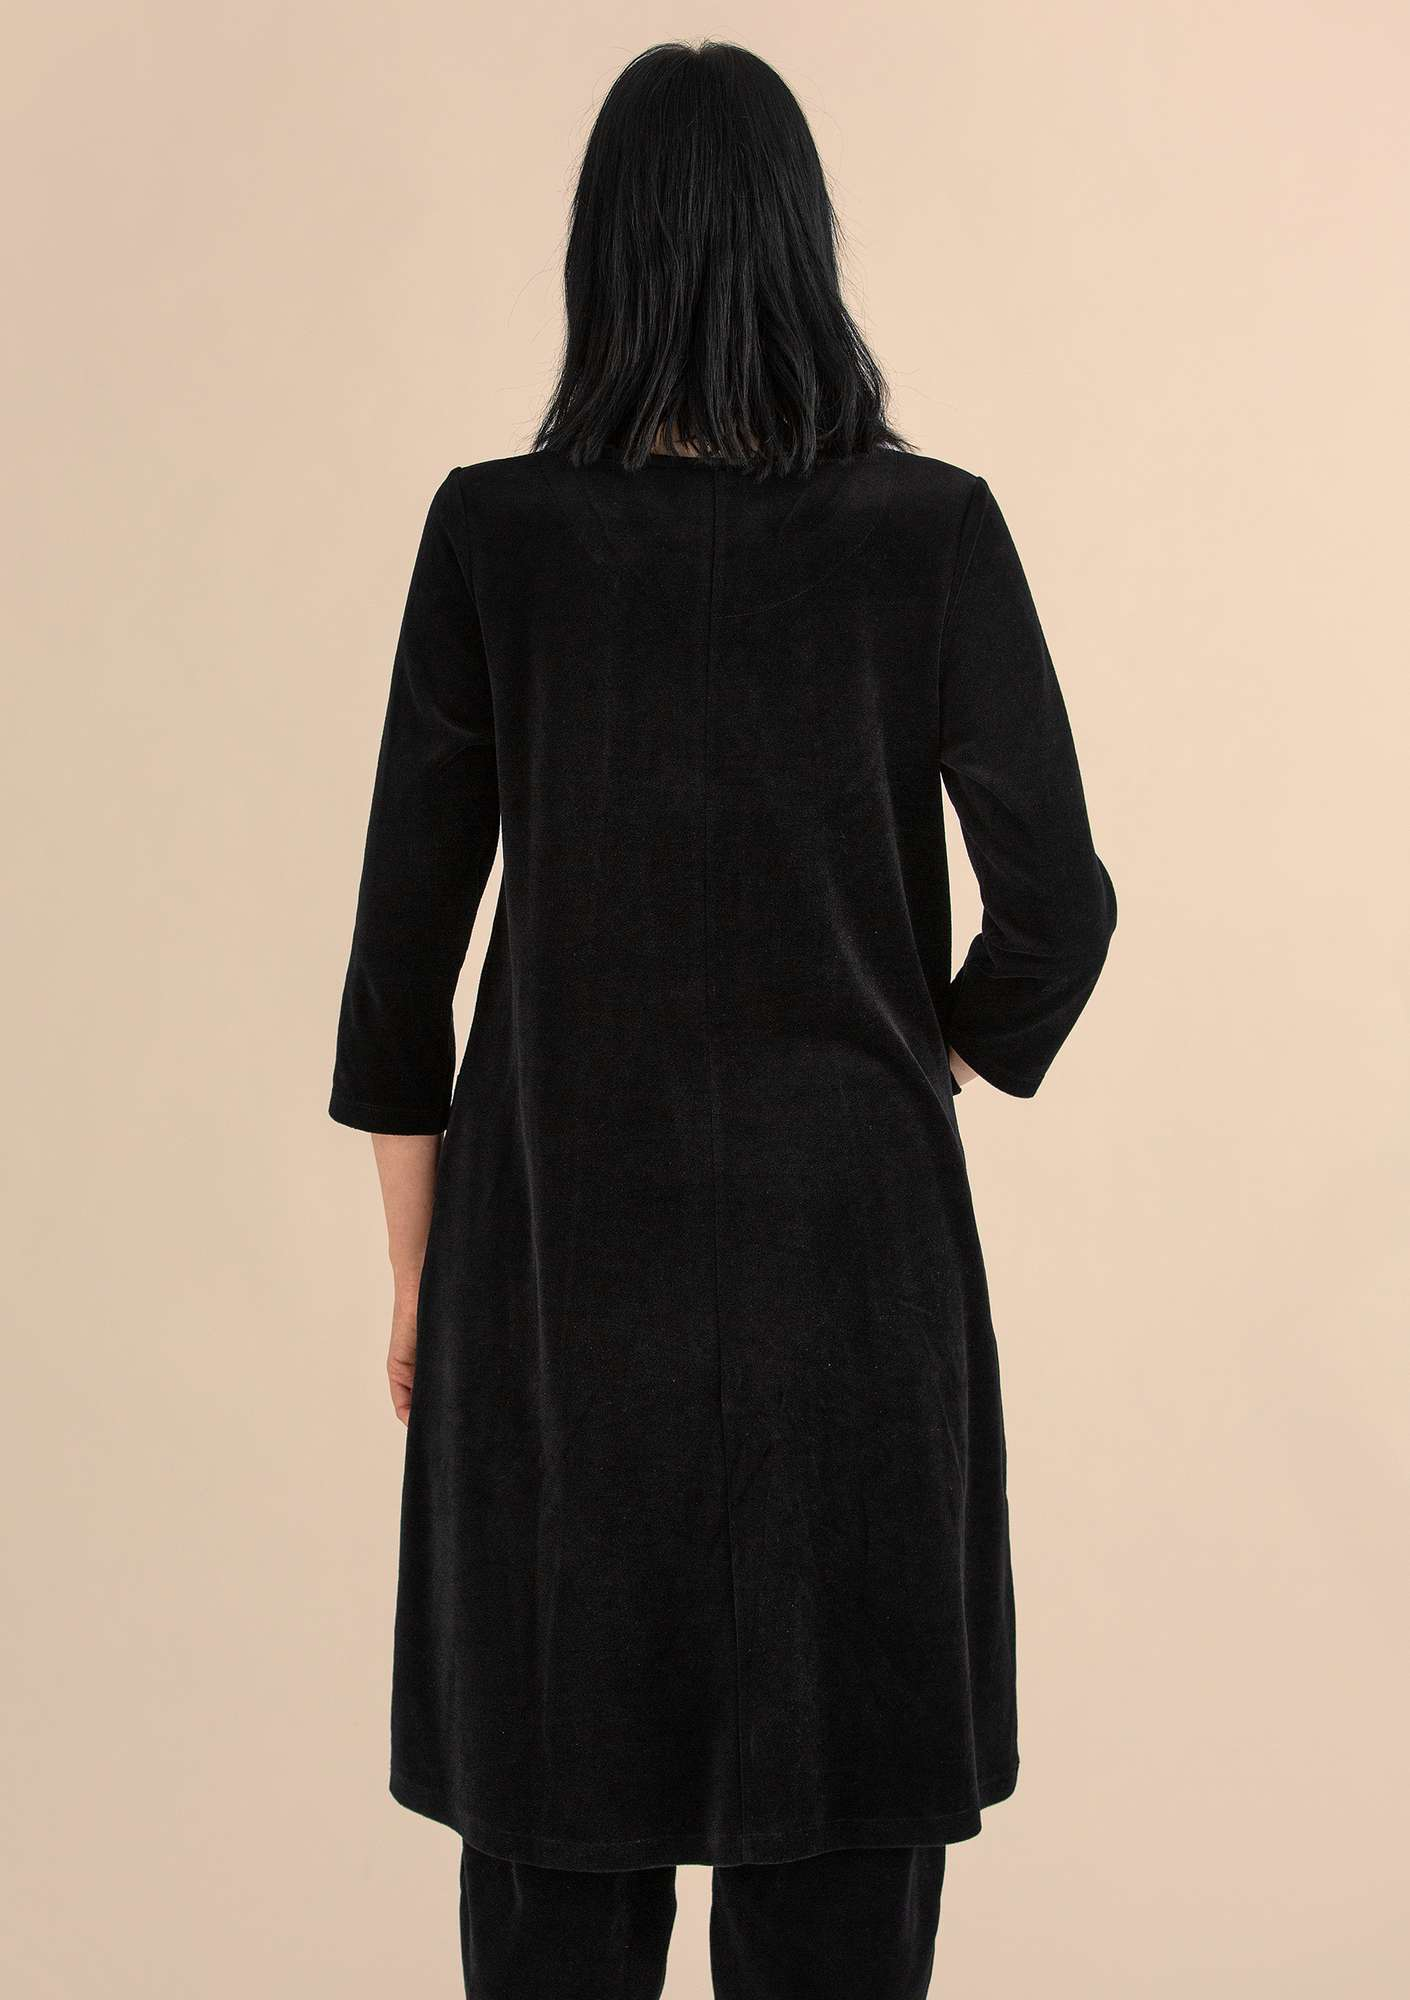 Velour dress in organic cotton/polyester black